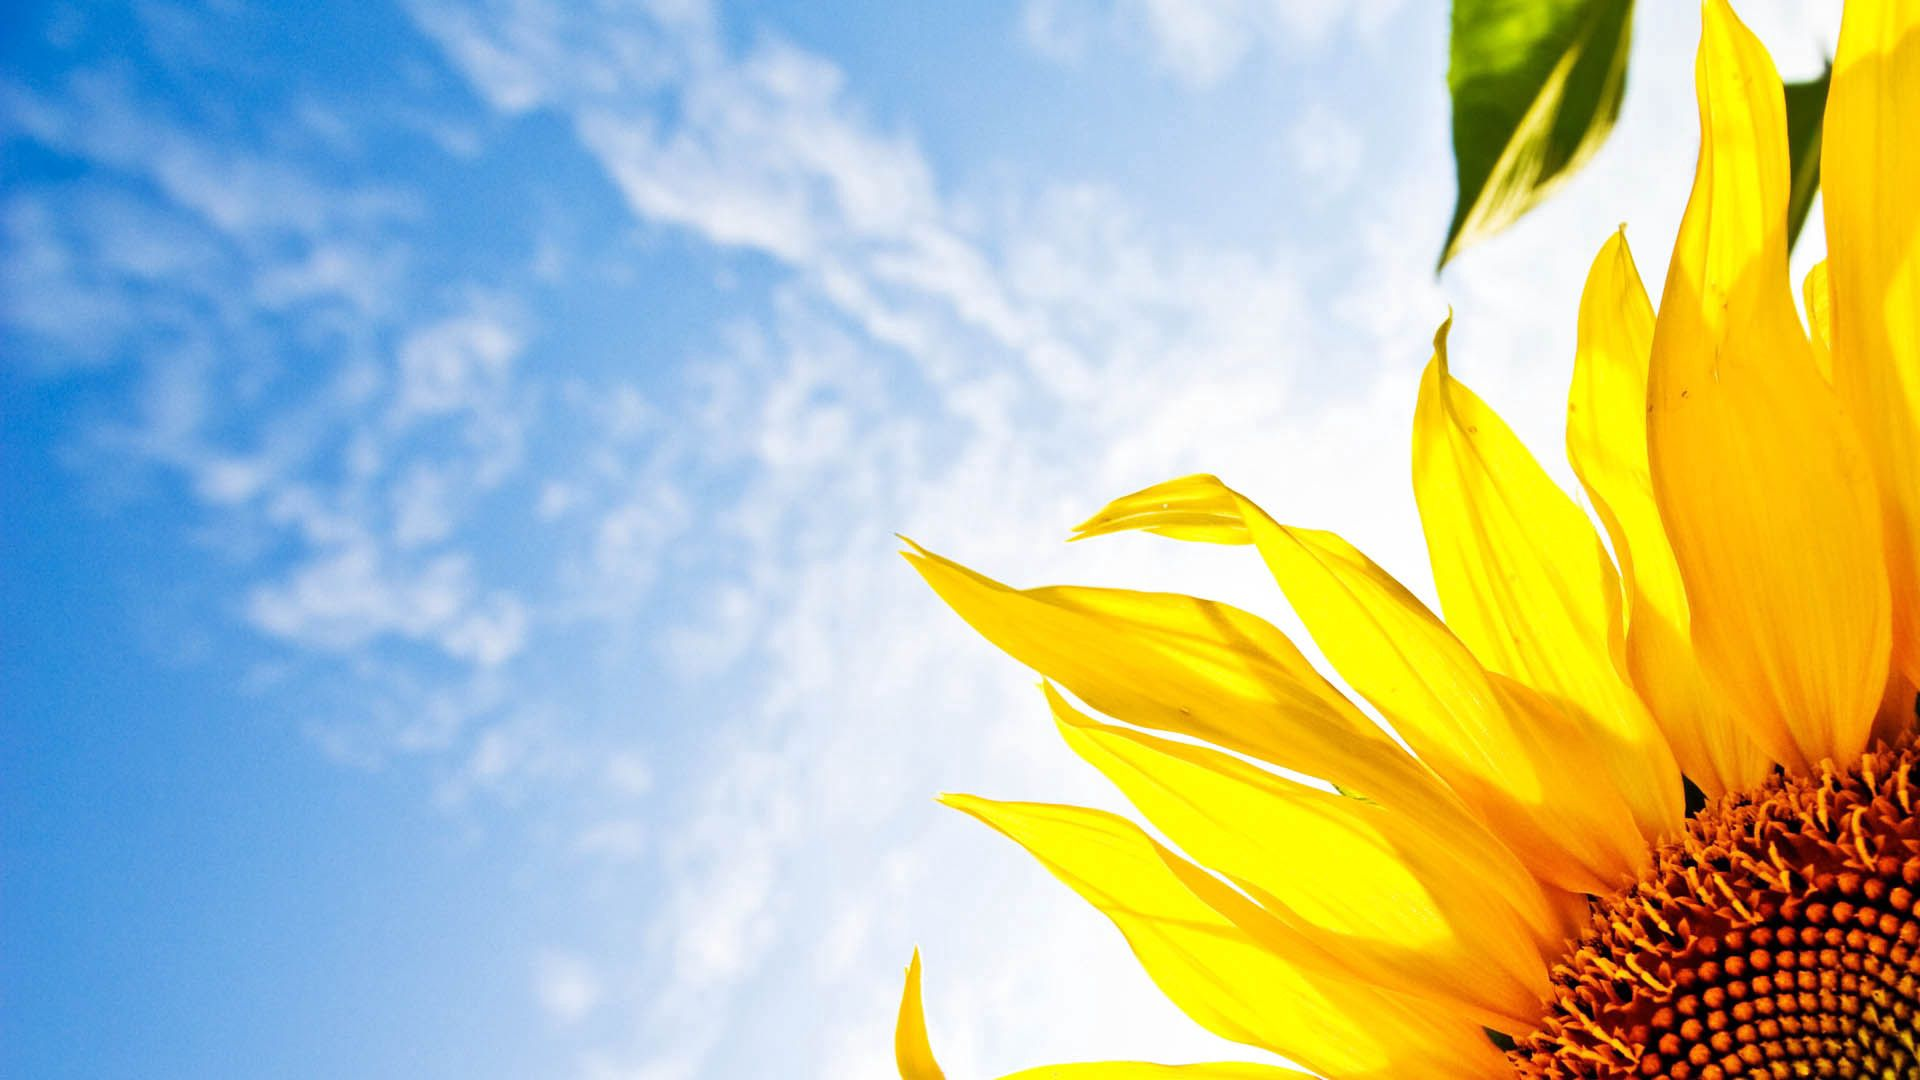 75663 download wallpaper Flowers, Flower, Sunflower, Sky, Clouds screensavers and pictures for free